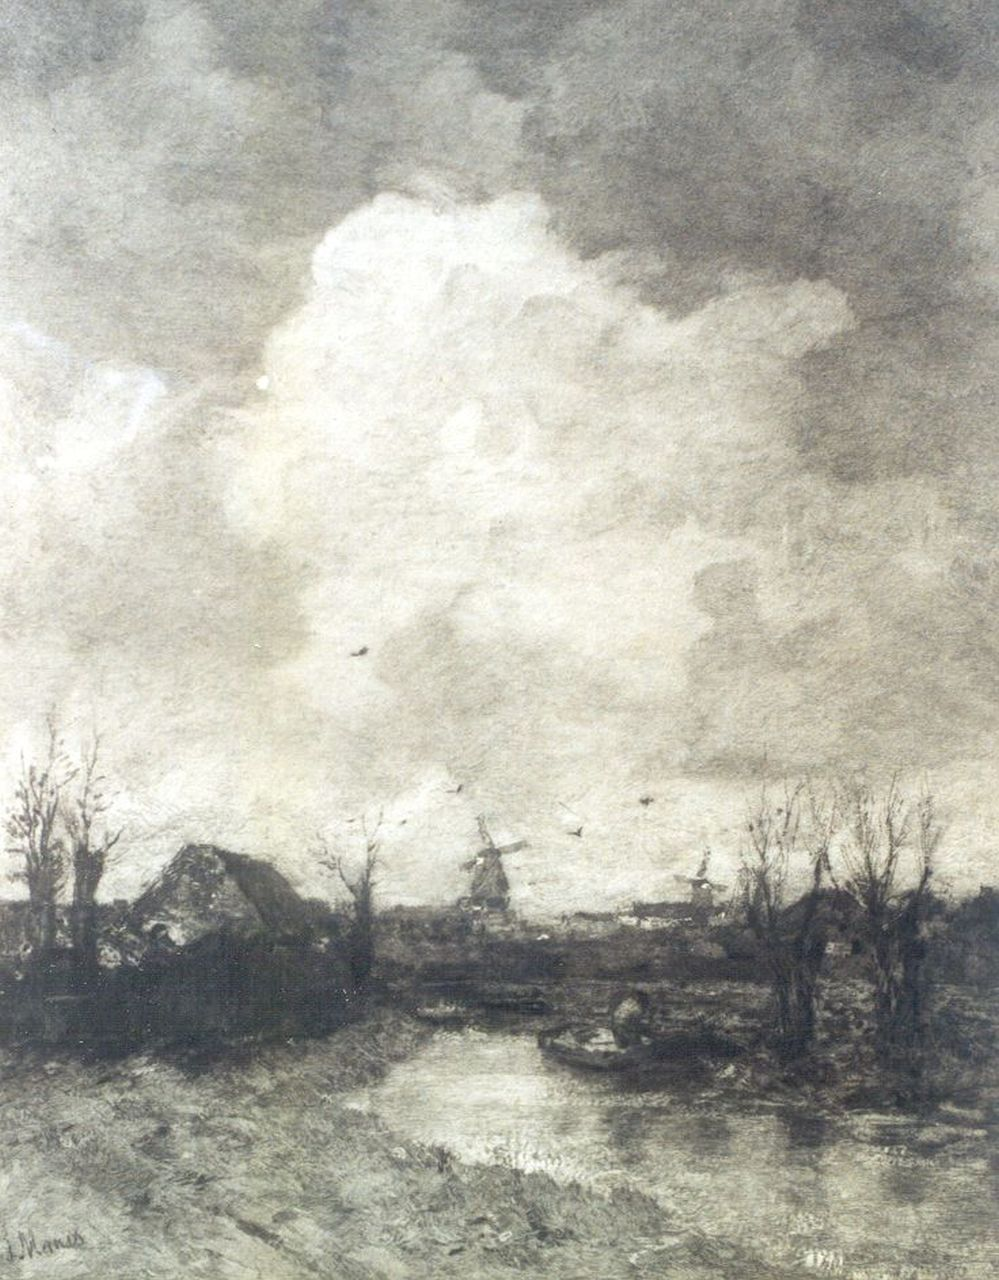 Johannes Graadt van Roggen | A landscape, with a windmill in the distance near The Hague, after J.H. Maris, etching on paper, 50.0 x 63.0 cm, signed l.r.